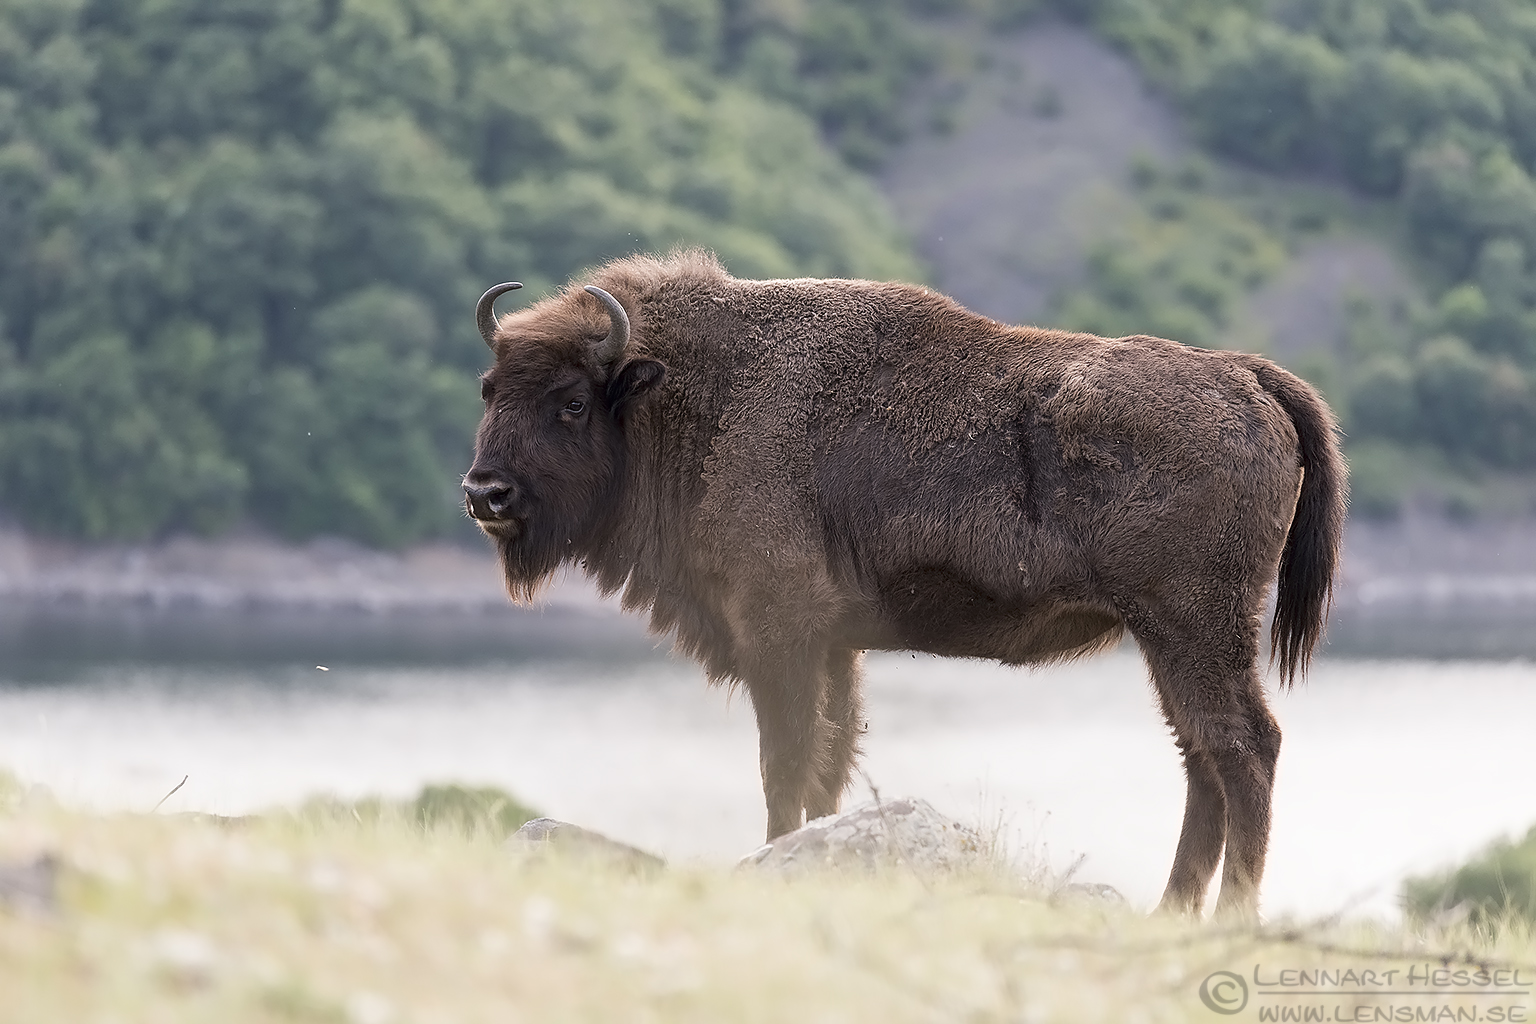 European Bison Bulgaria 2016